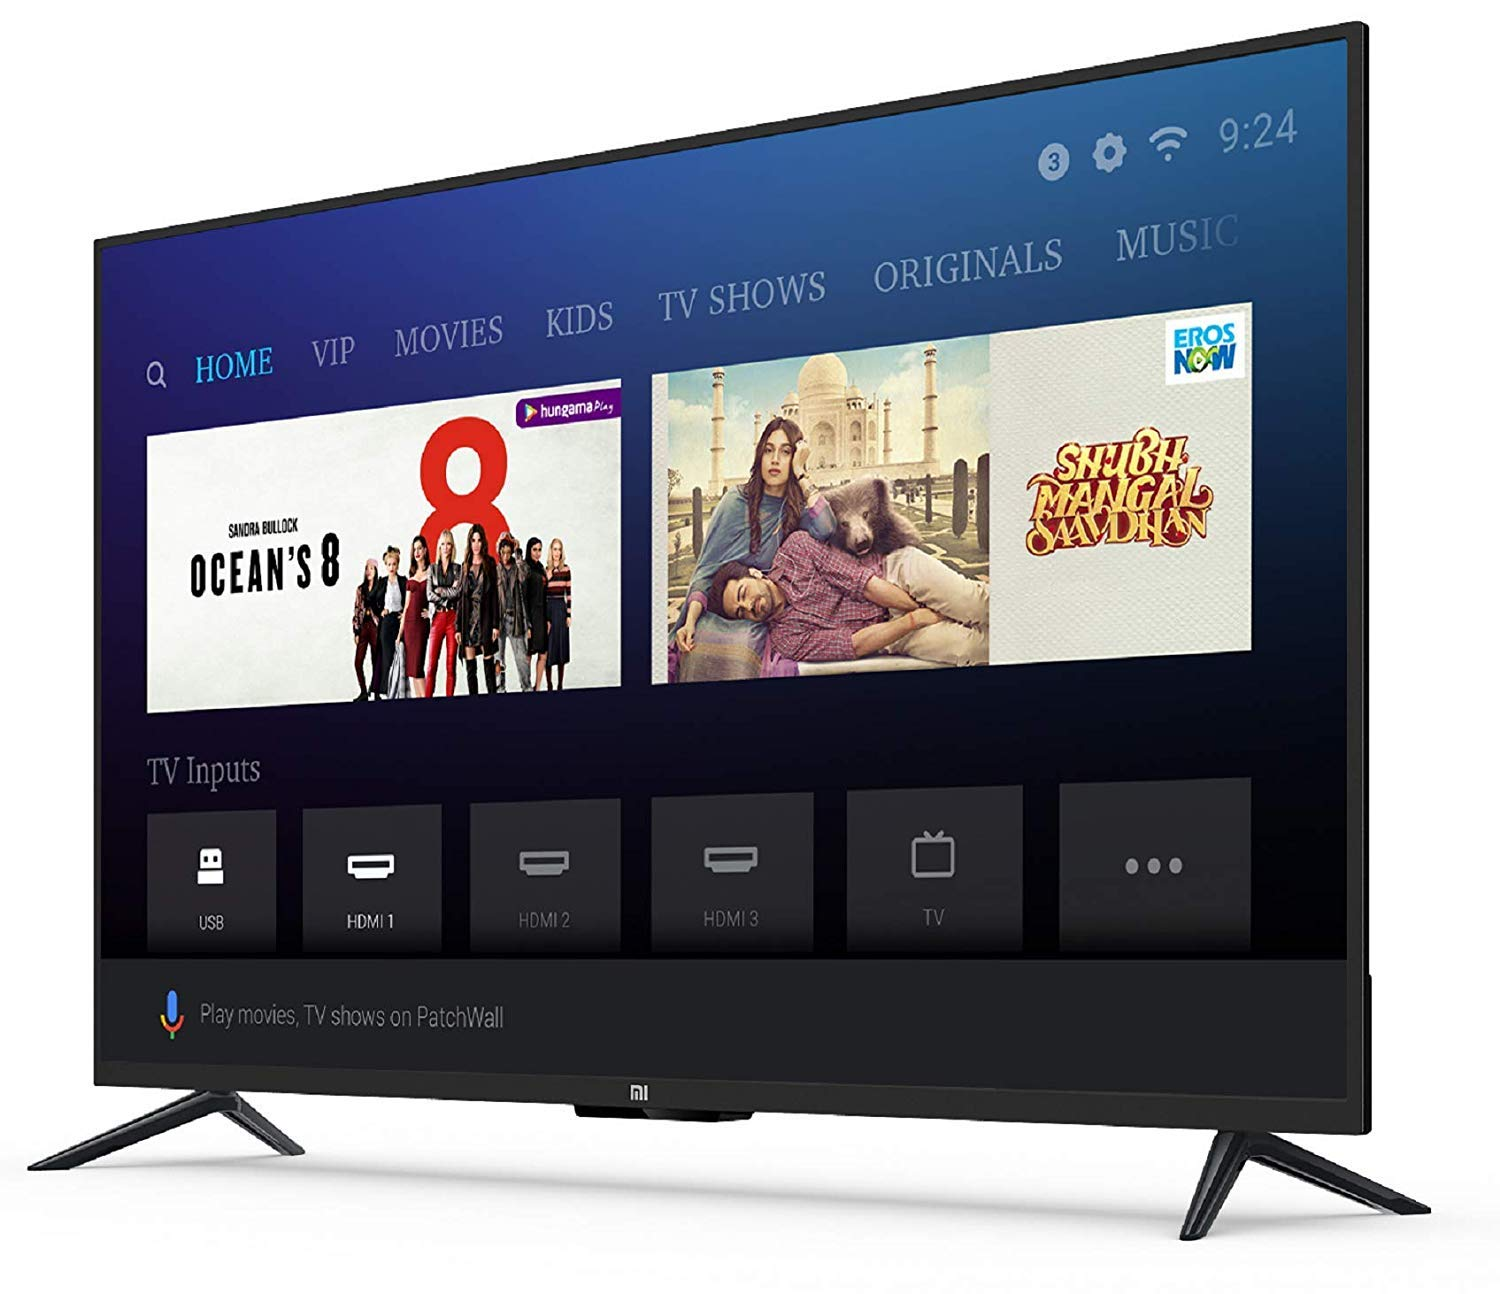 f4e555b96b924 Mi LED TV 4A PRO 123.2 cm Full HD Android TV  Amazon.in  Electronics